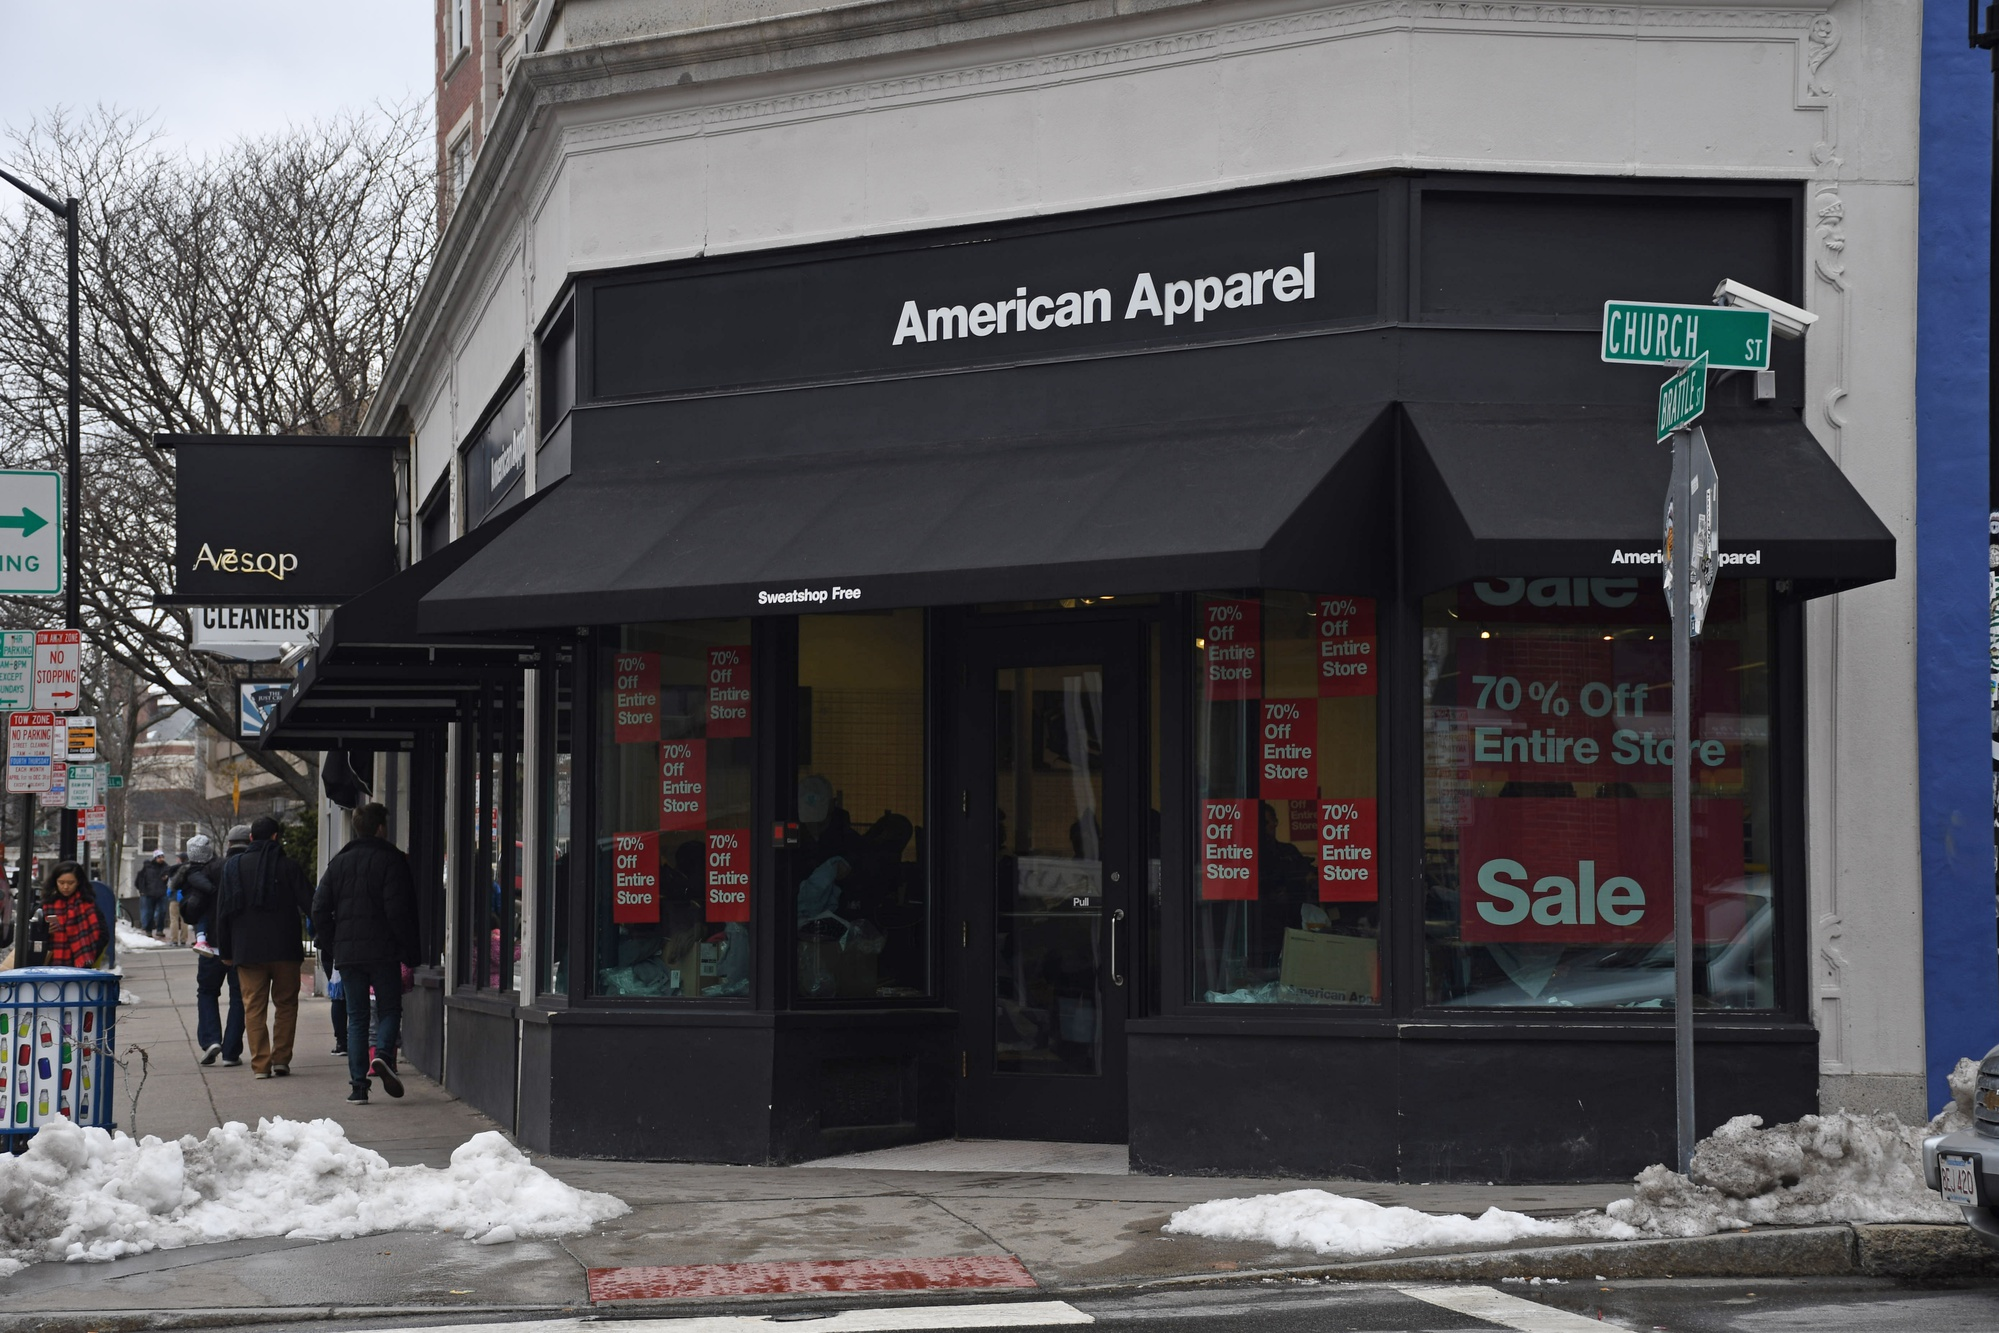 The American Apparel store on Brattle Street will close this month following the firm's bankruptcy.